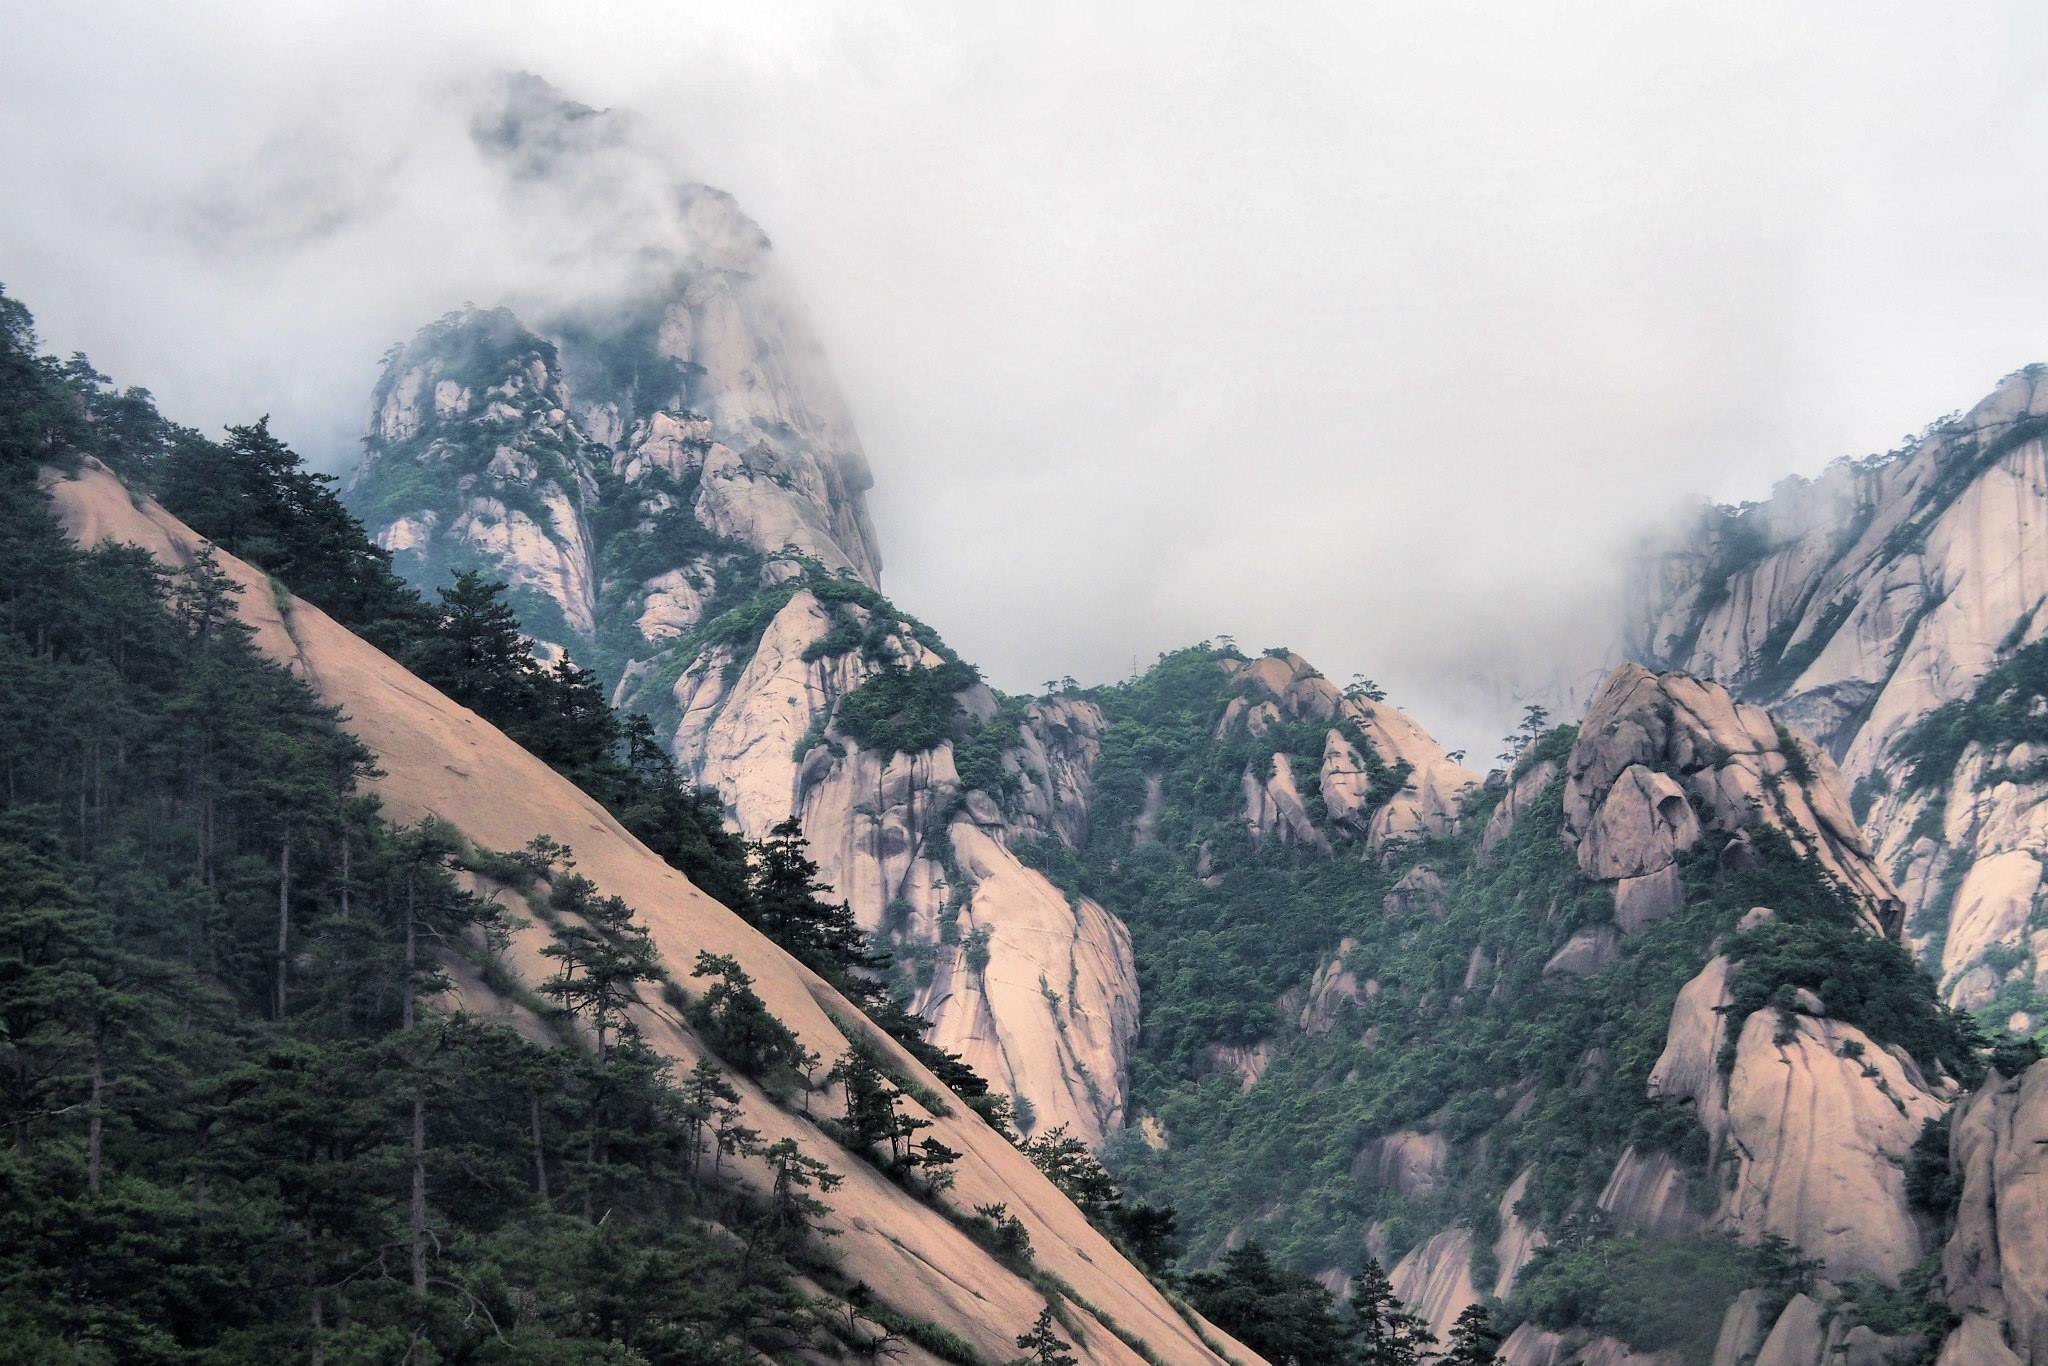 The top of Huangshan offers otherworldly views. Just ignore the masses of people, it's still worth going